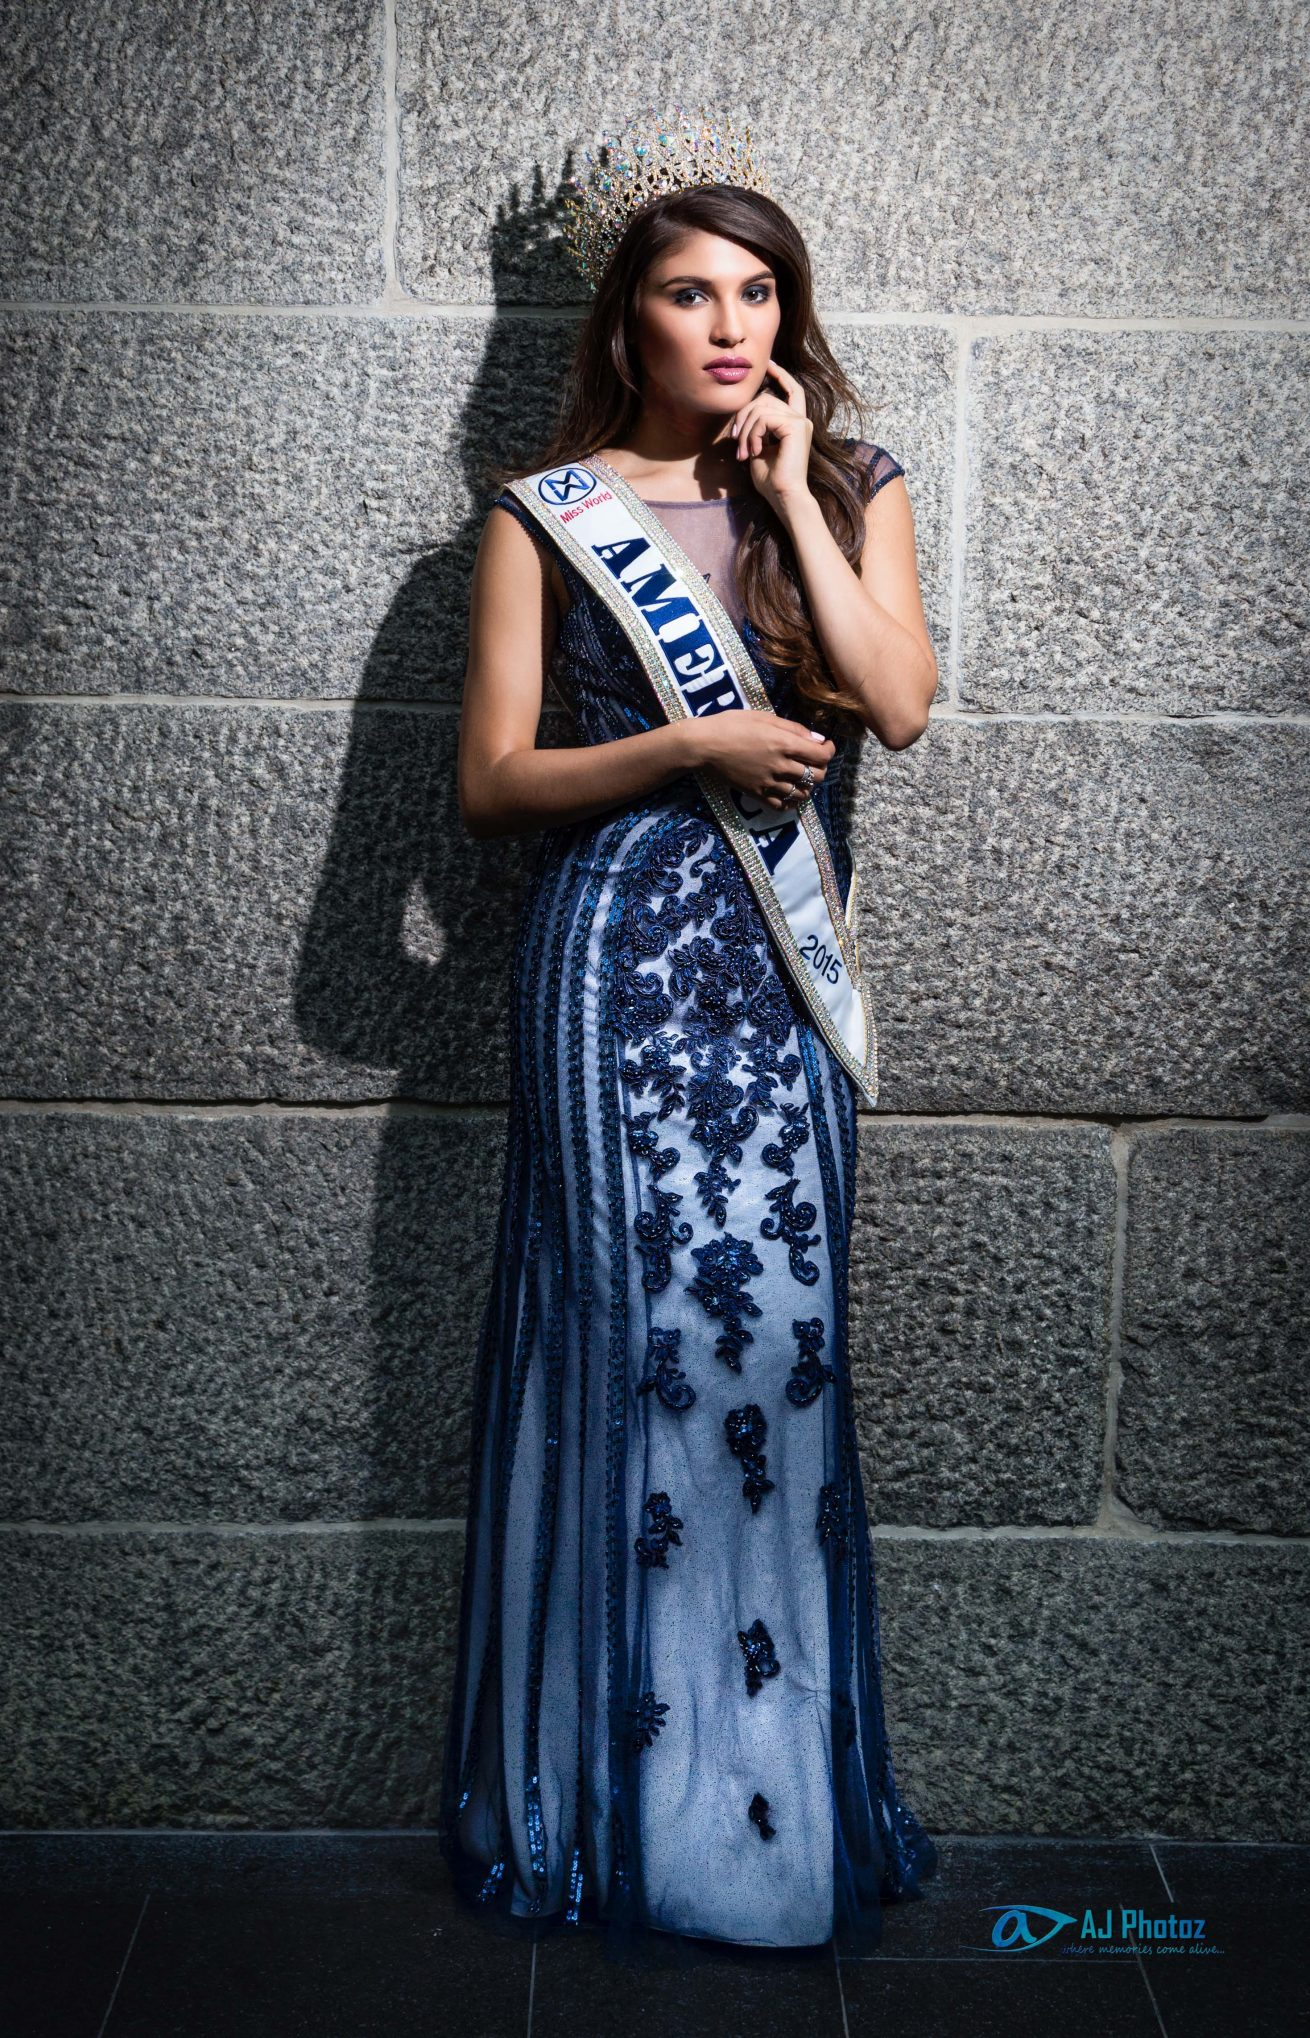 Miss World America 2015 – Victoria Mendoza